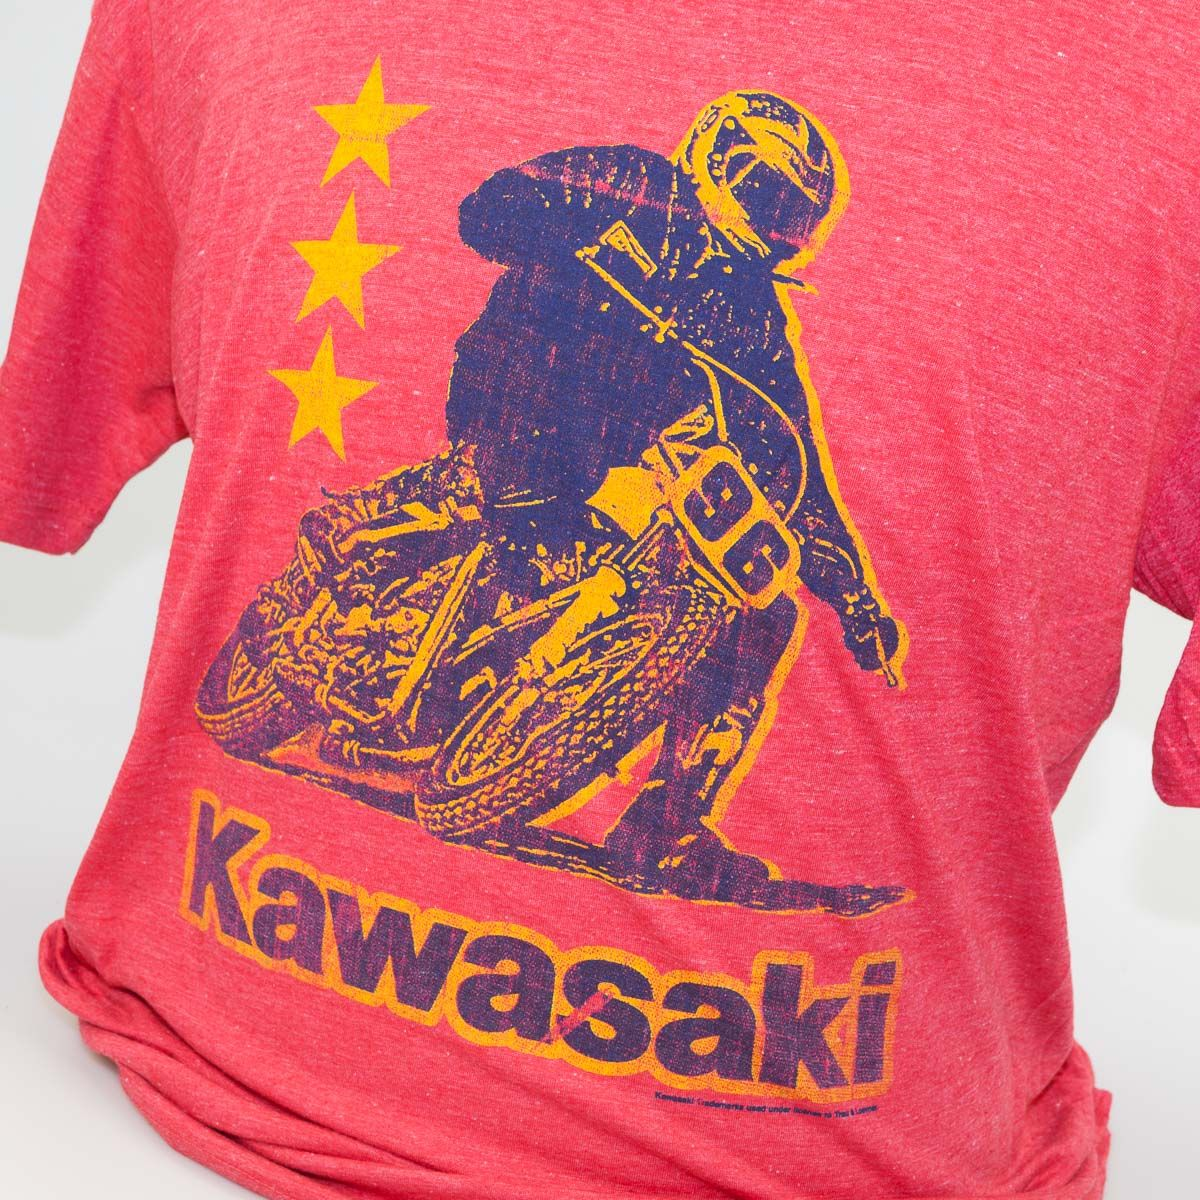 the best attitude 606ea b989f Kawasaki Motorcycle Step Brothers T-Shirt  Vintage-Style Tees   RetroPlanet.com